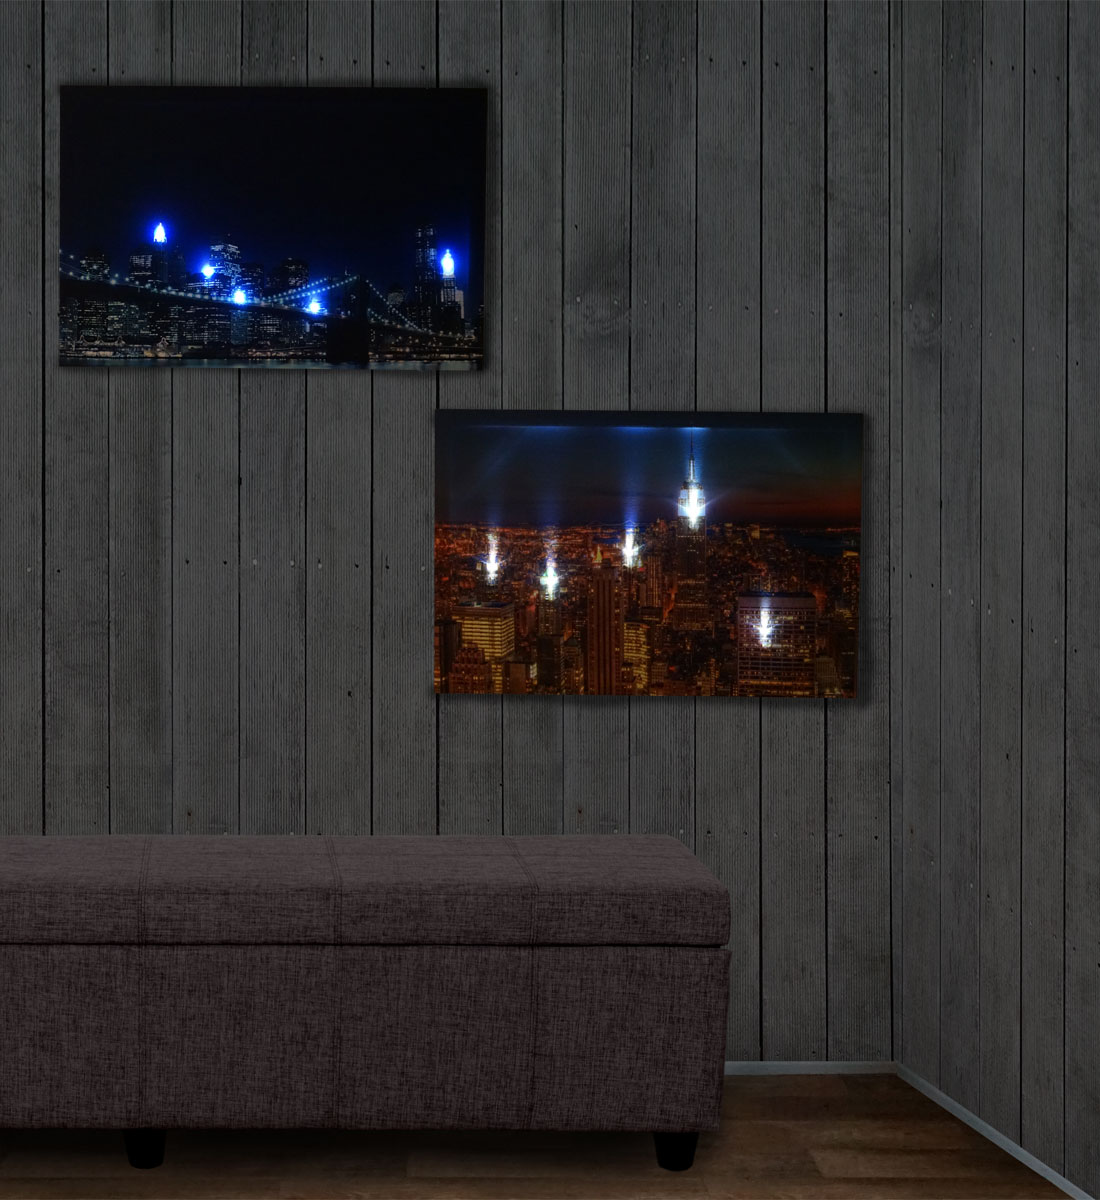 2x led bild mit beleuchtung leinwandbild leuchtbild wandbild 60x40cm timer skyline new york. Black Bedroom Furniture Sets. Home Design Ideas